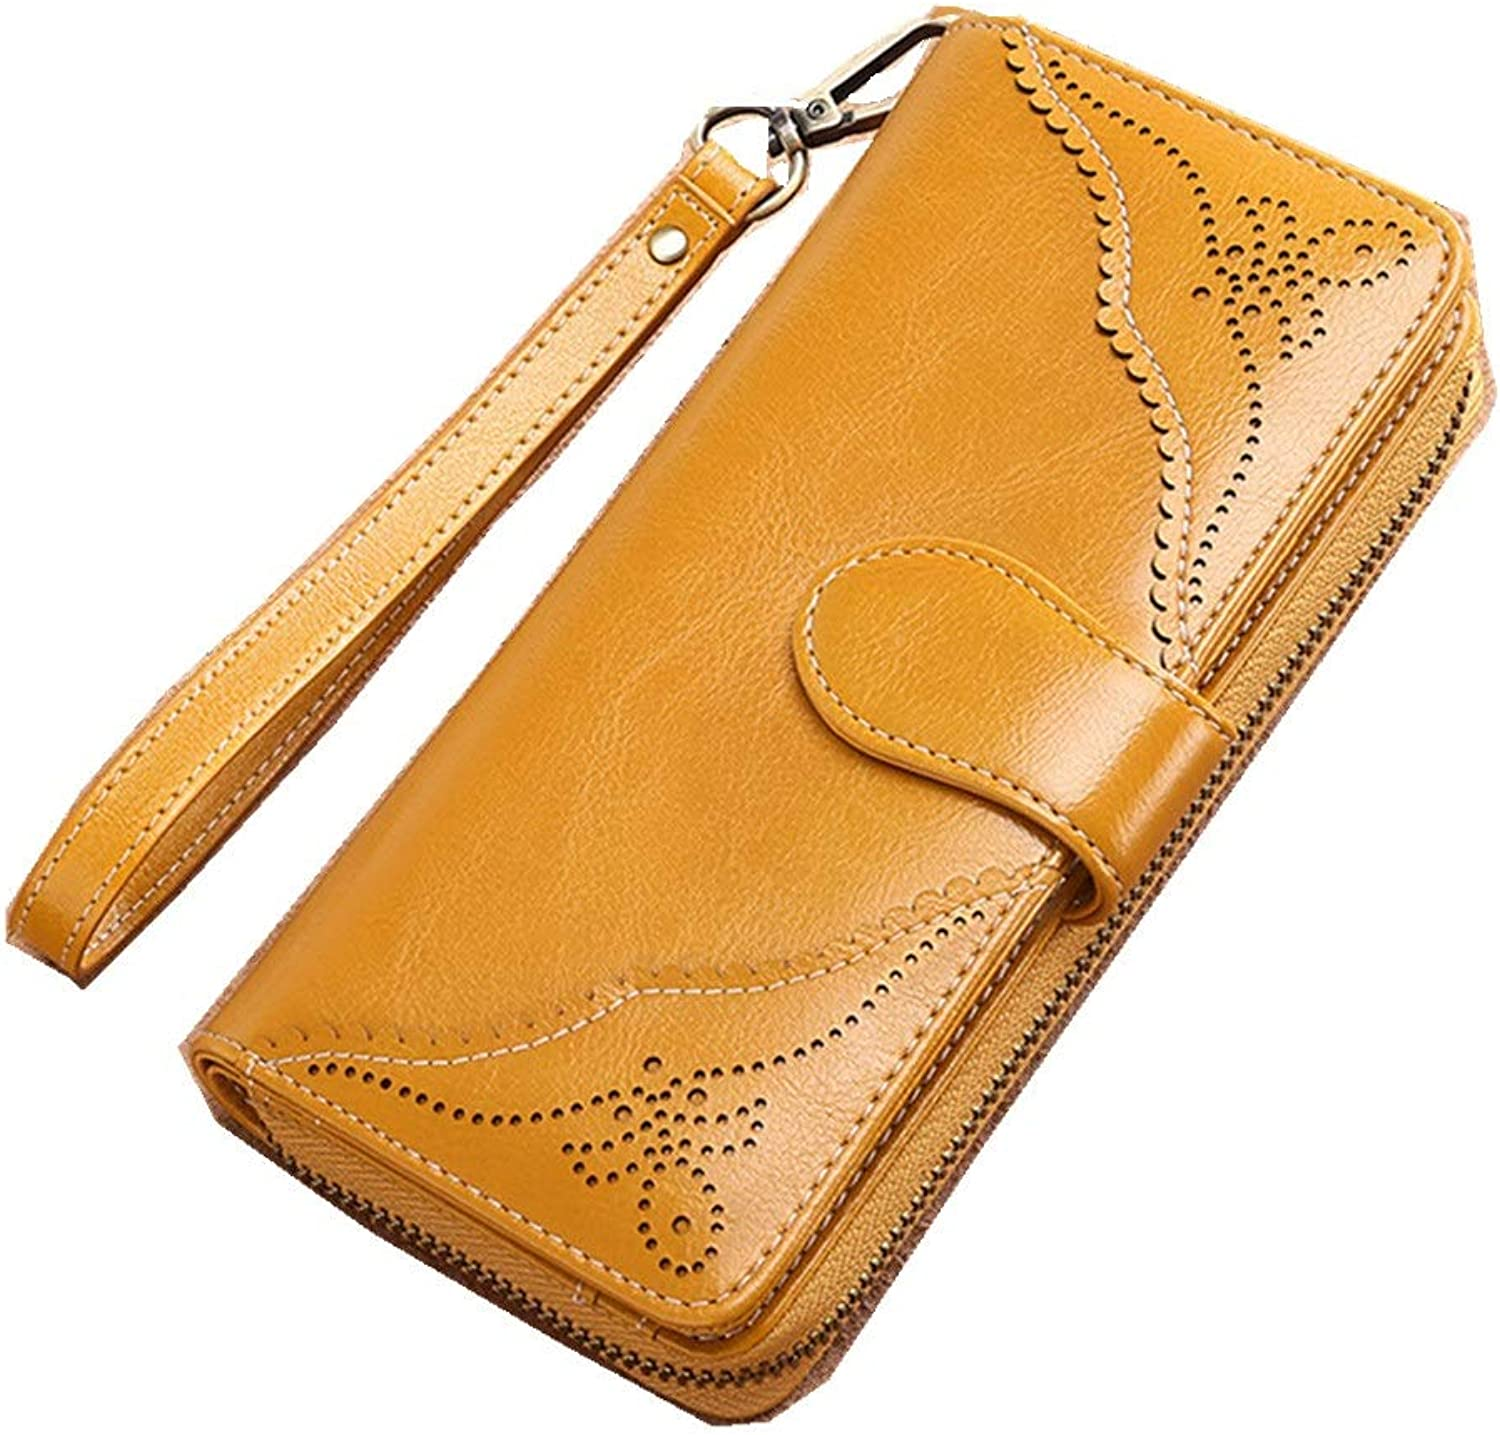 Women's Wallet Women's Leather Wallet Long Zipper Wallet Purse Bag Lady Large Capacity Bag Fashion Personality to Send A Good Friend Gift Splicing Large Capacity Wallet (color   Yellow)